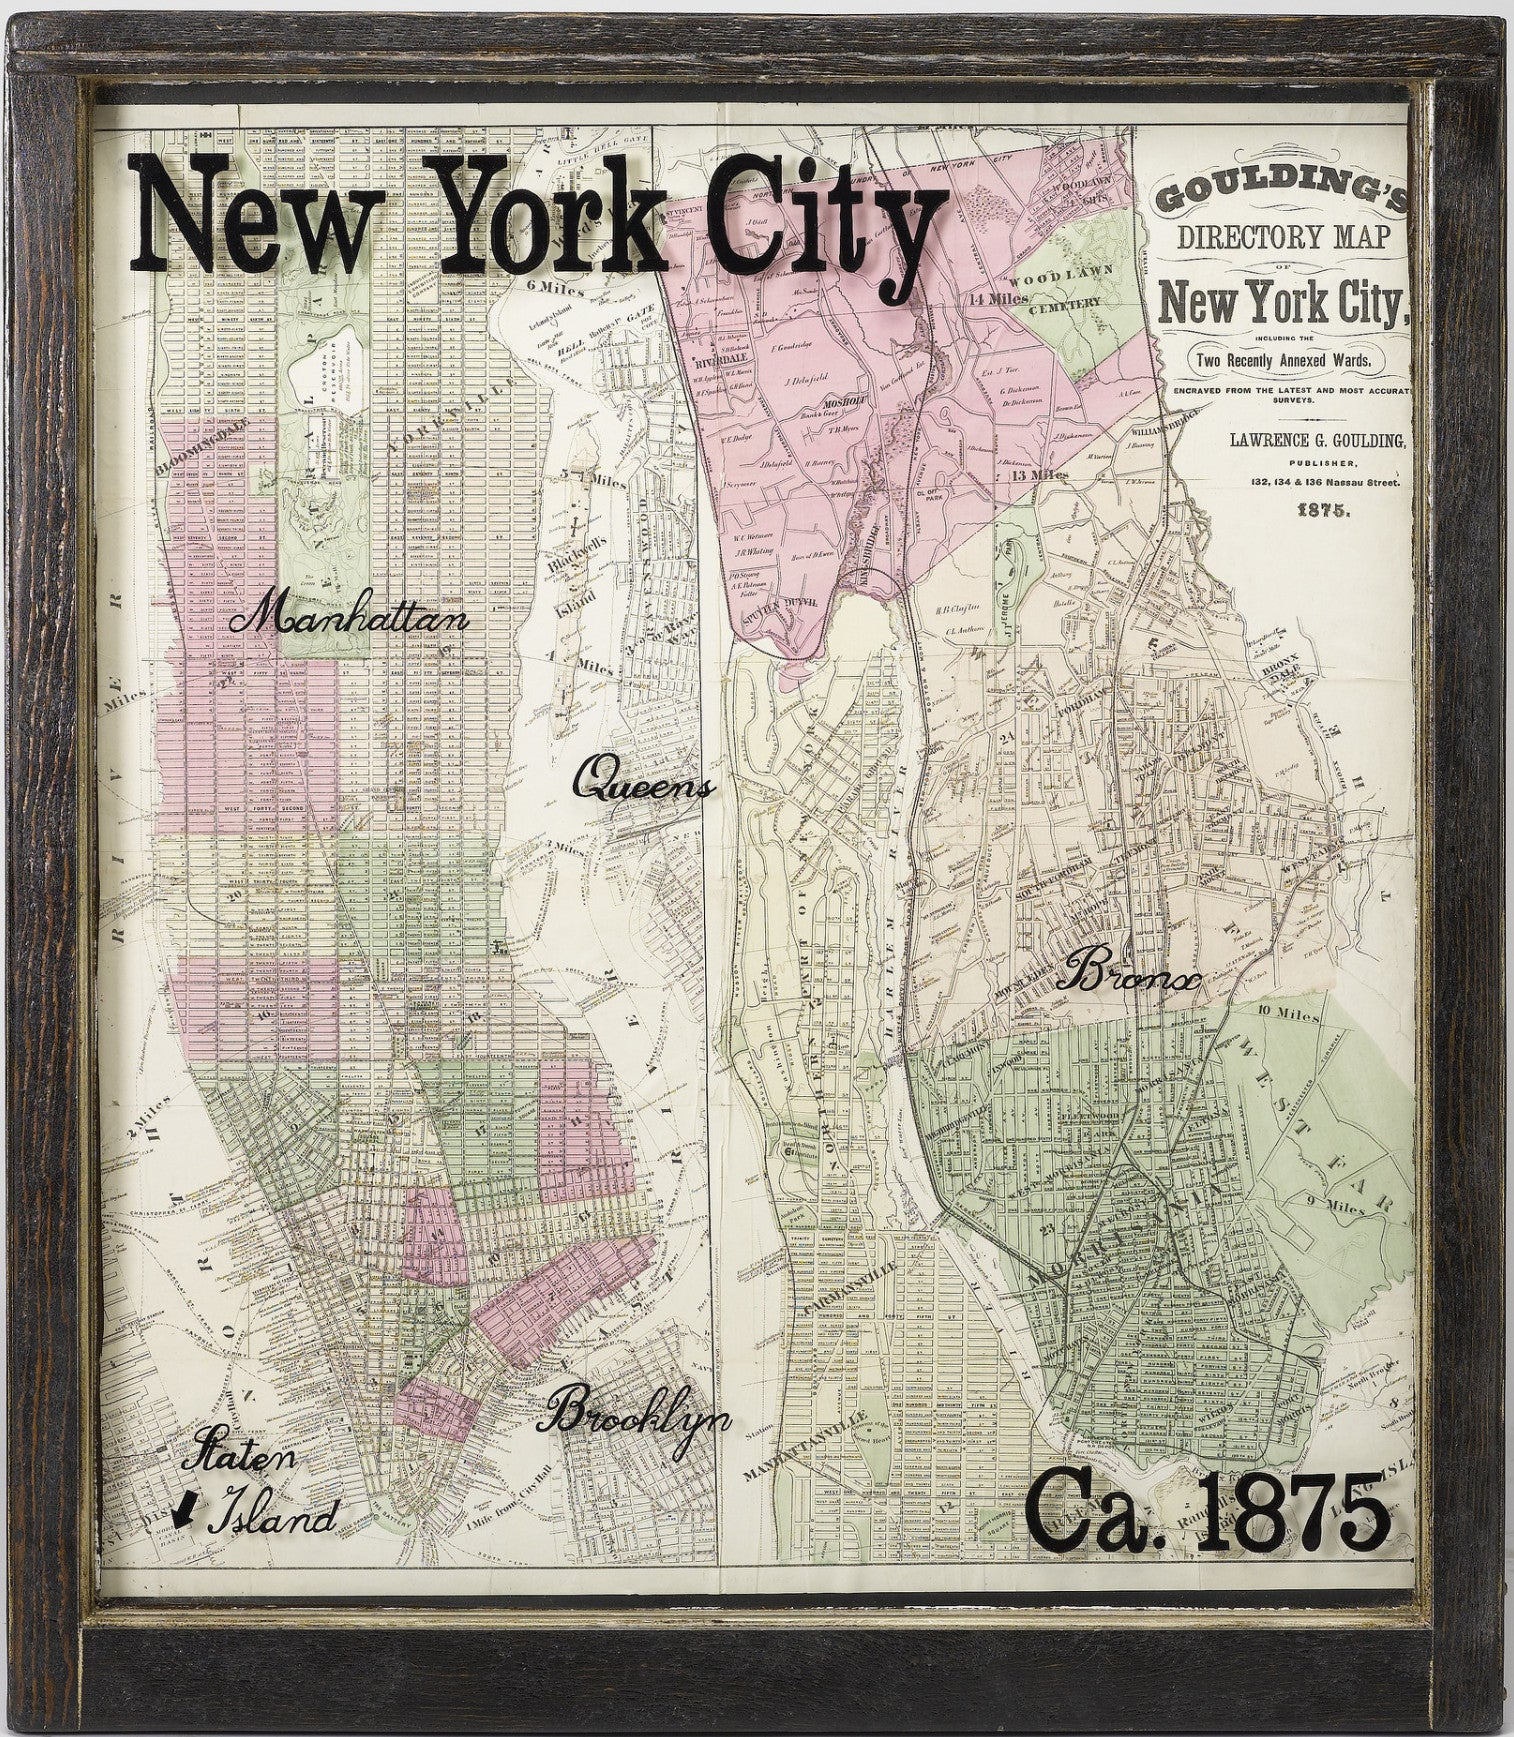 1875 New York City Map with Surrounding Burroughs in Antique